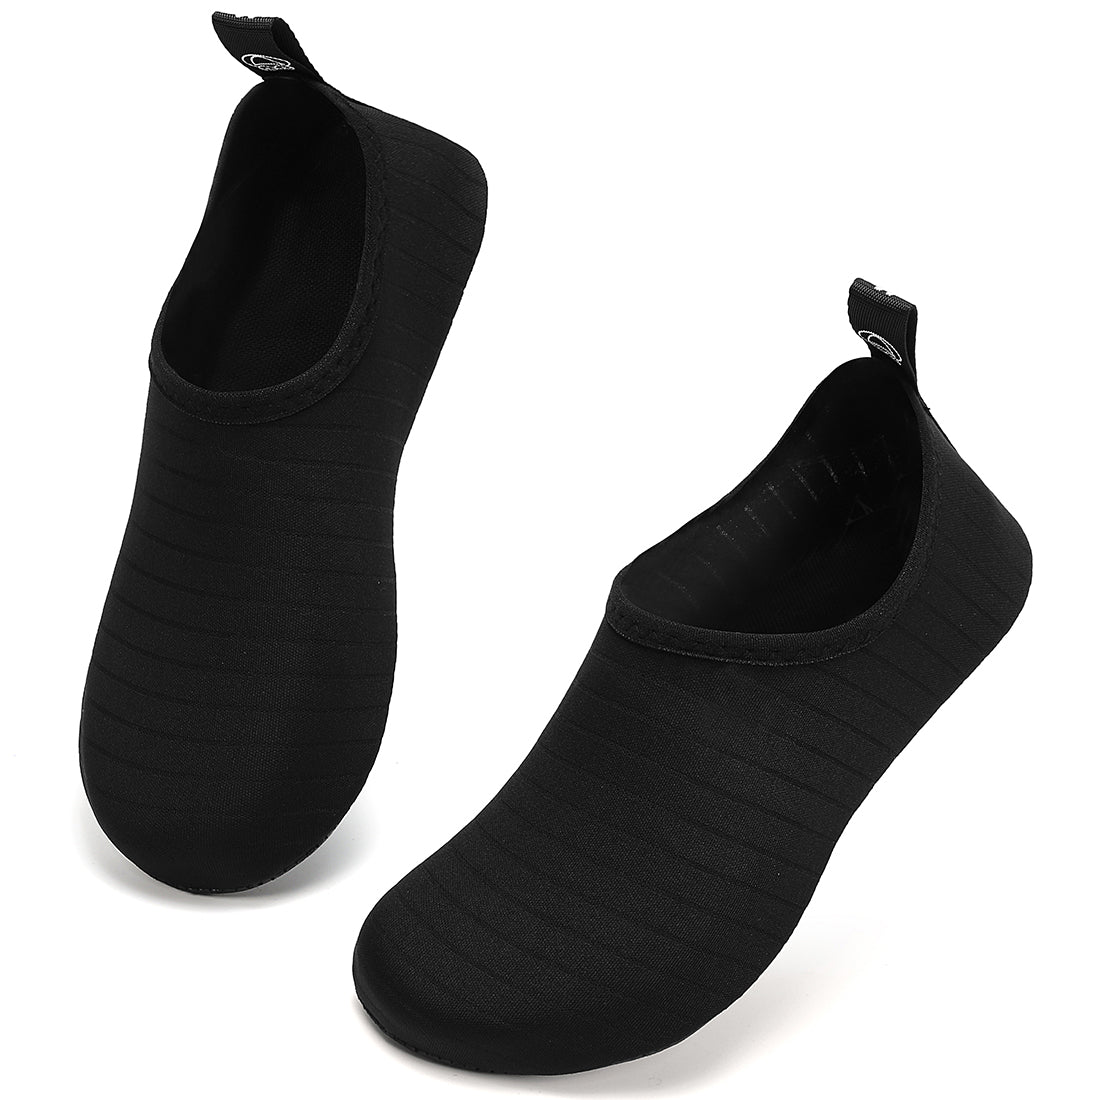 VIFUUR Hot Water Shoes for Men Women